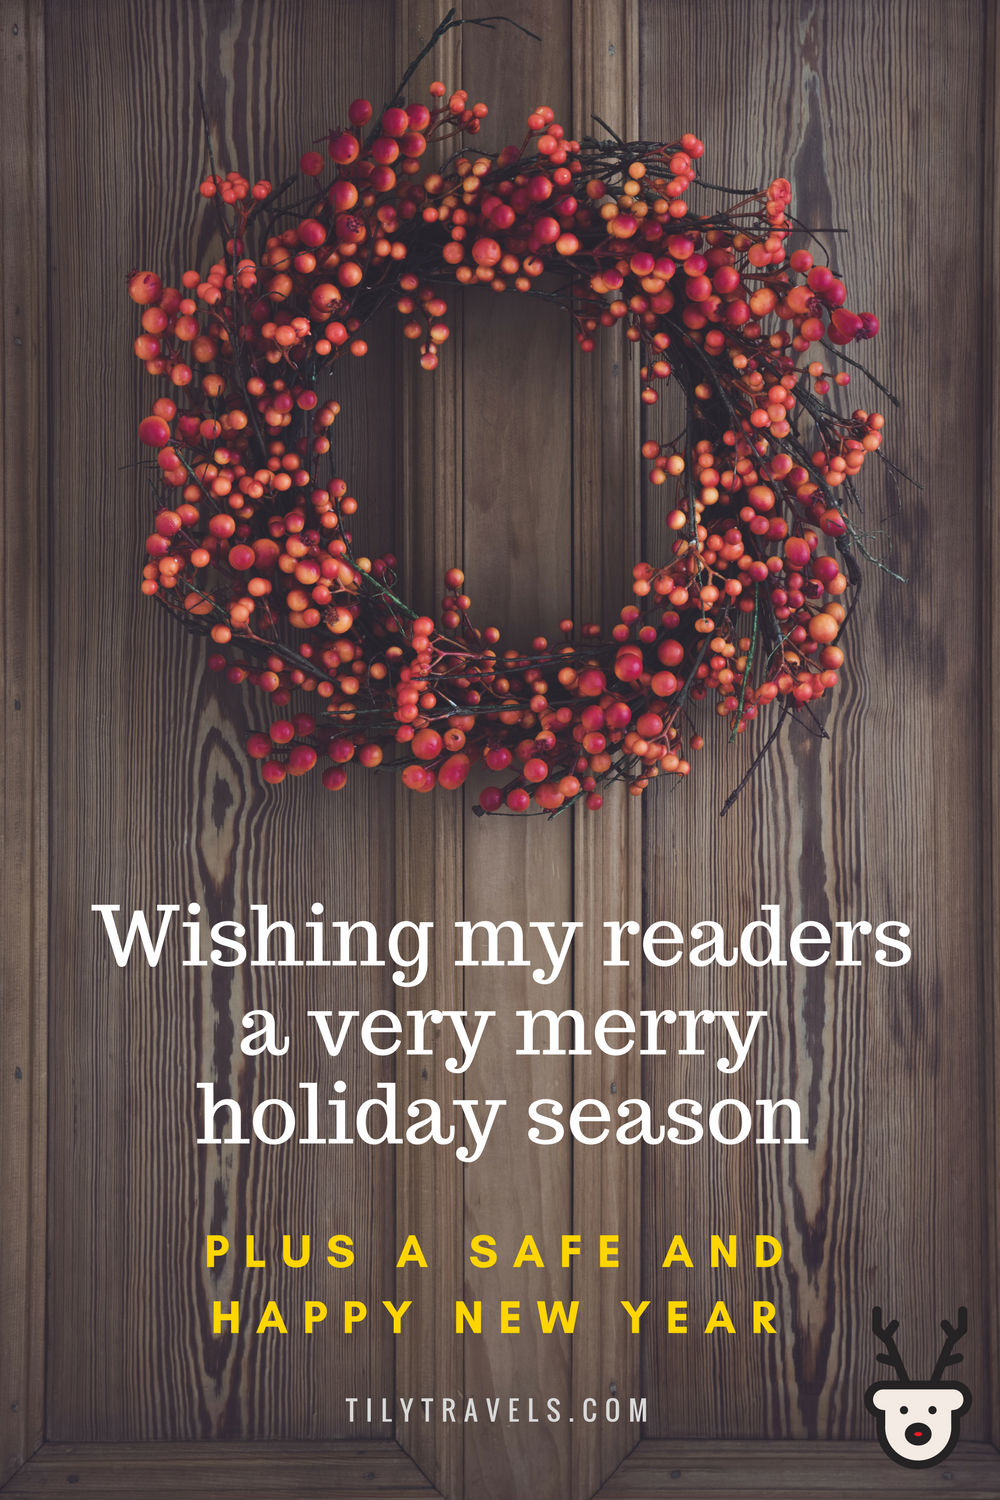 Wishing my readers a very merry holiday season, plus a safe and happy new year.